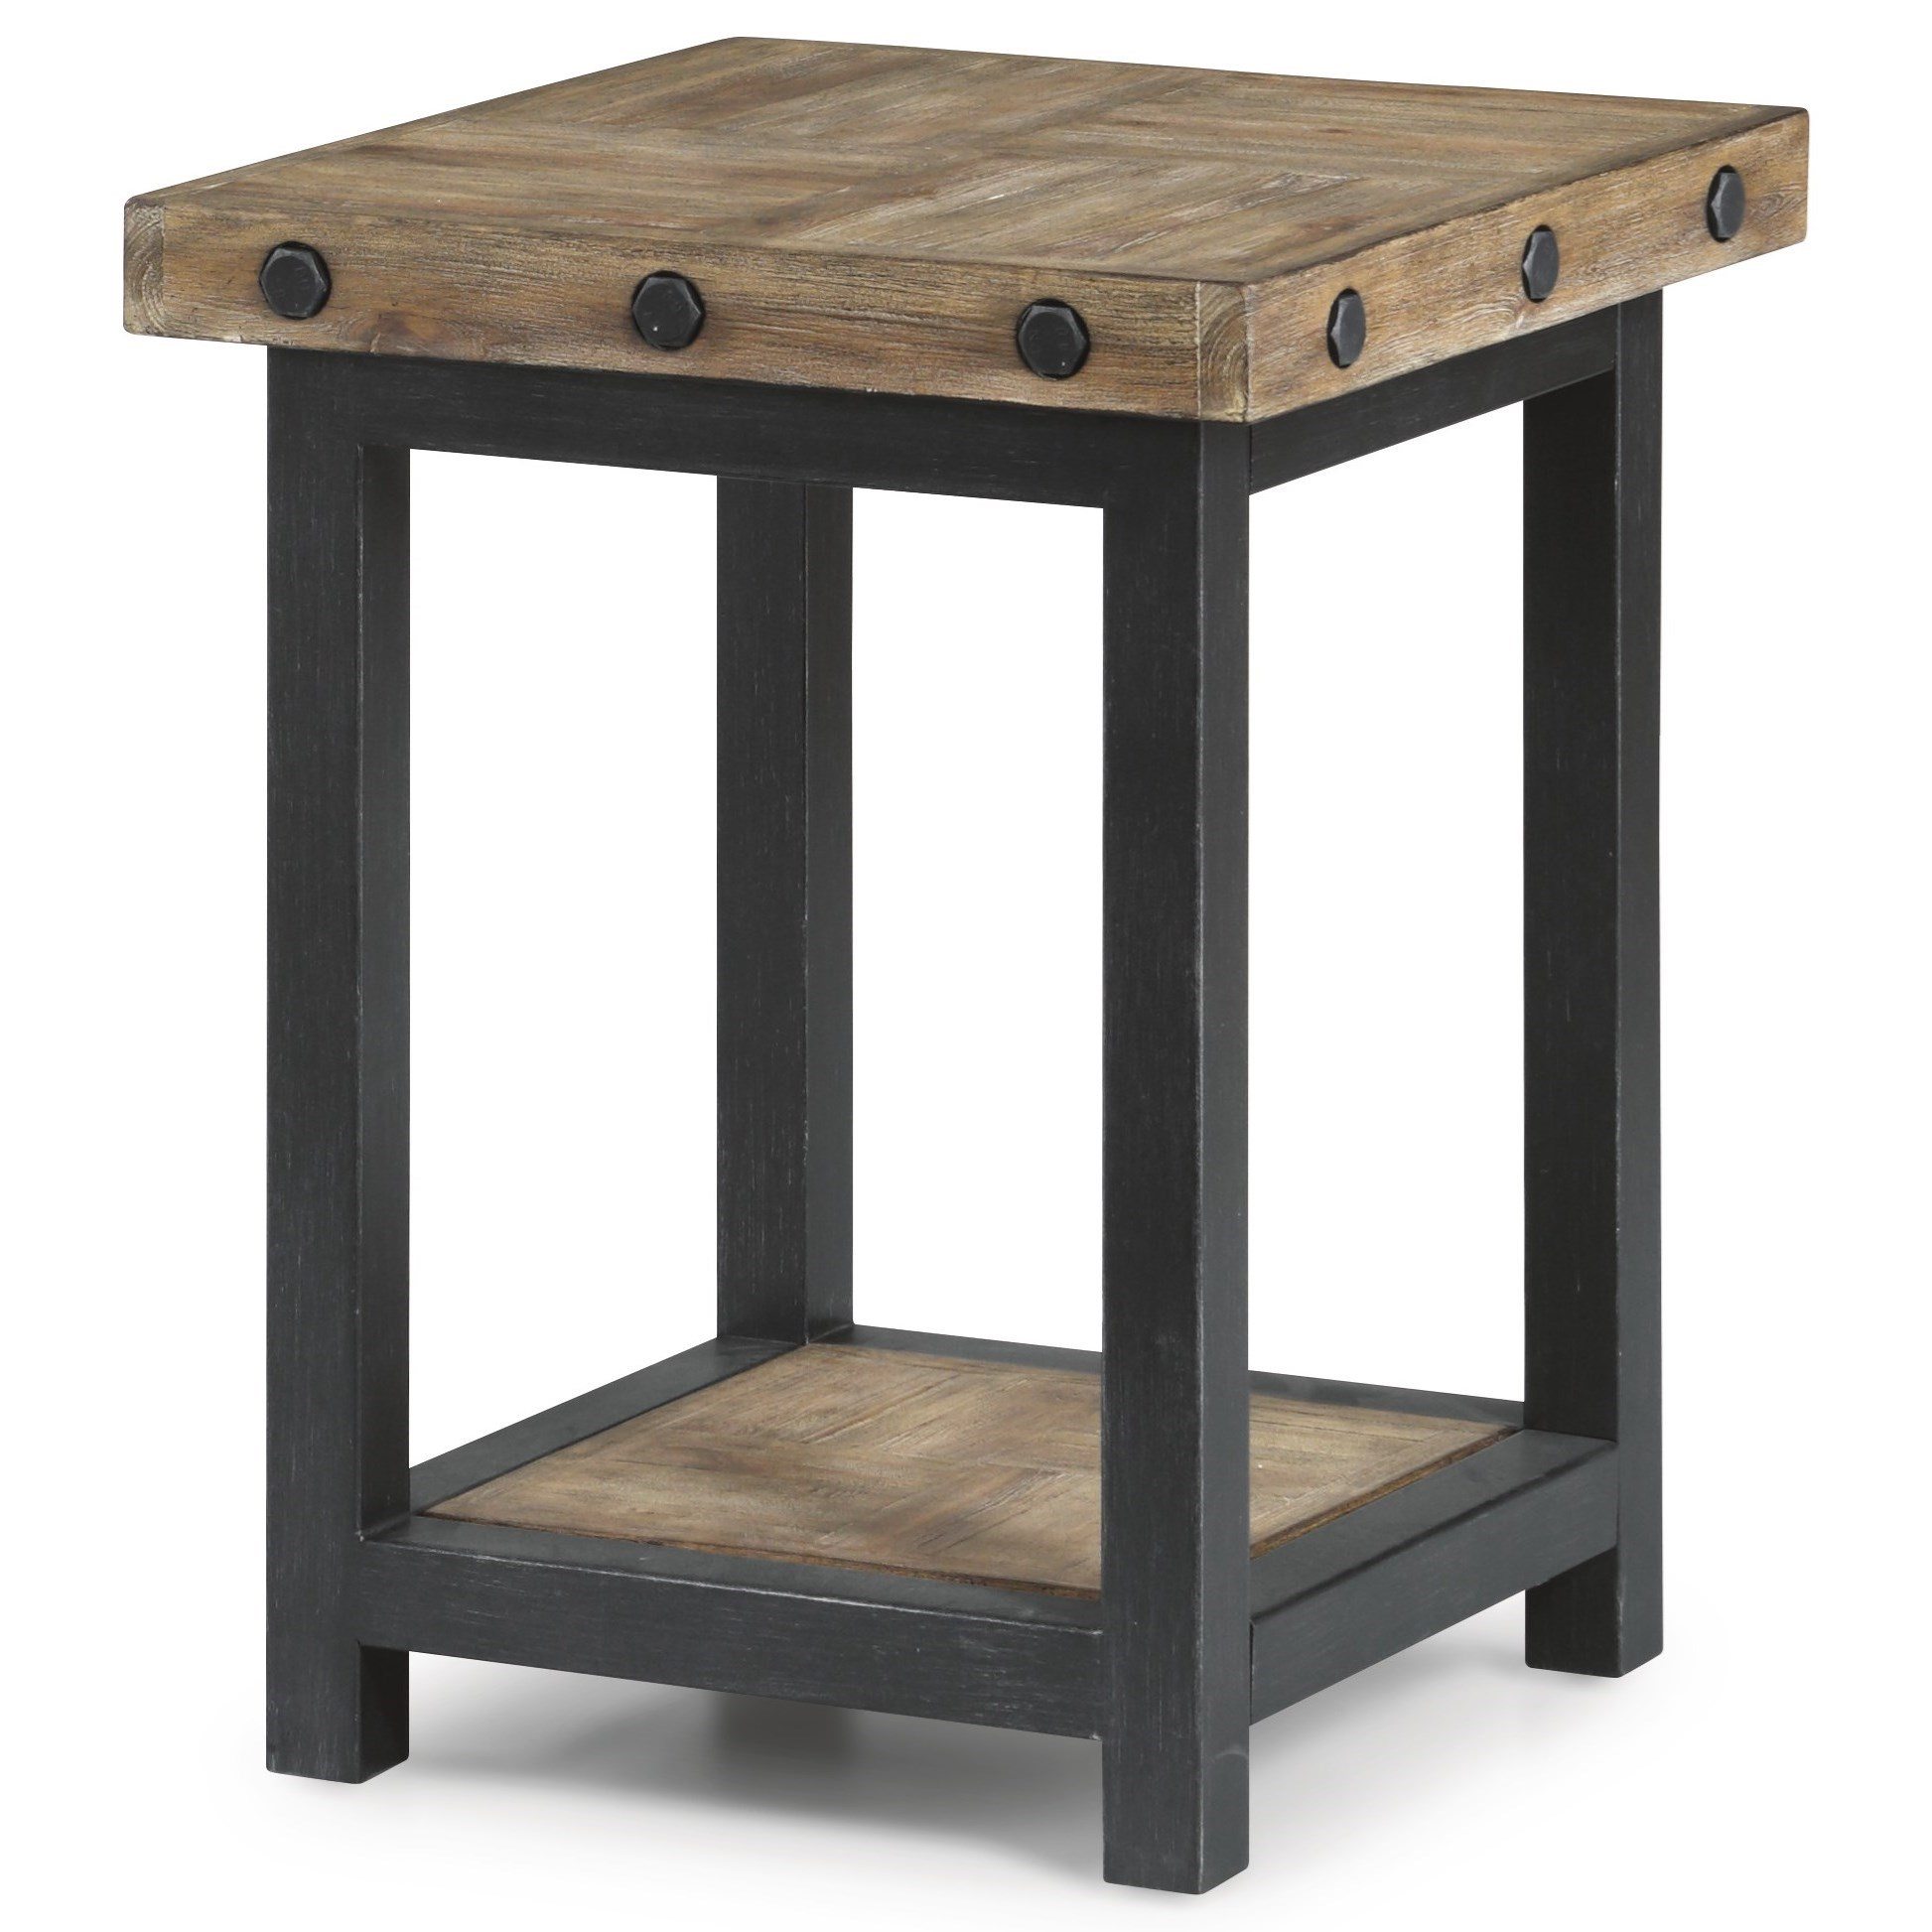 Hammermill Chair Side Table by Flexsteel at Crowley Furniture & Mattress